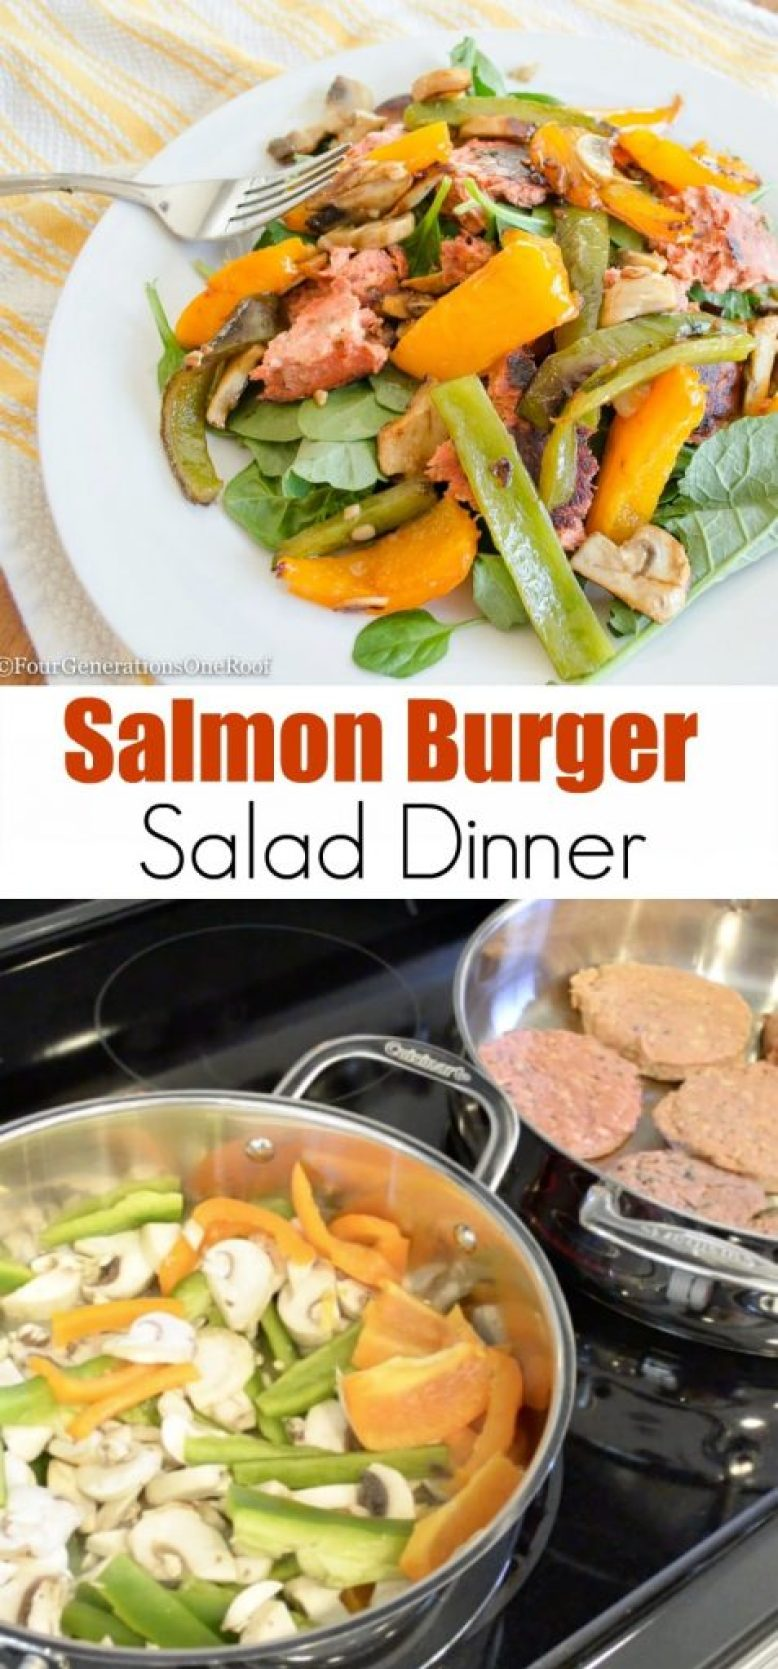 Salmon Burger Salad Dinner with roasted peppers and mushrooms